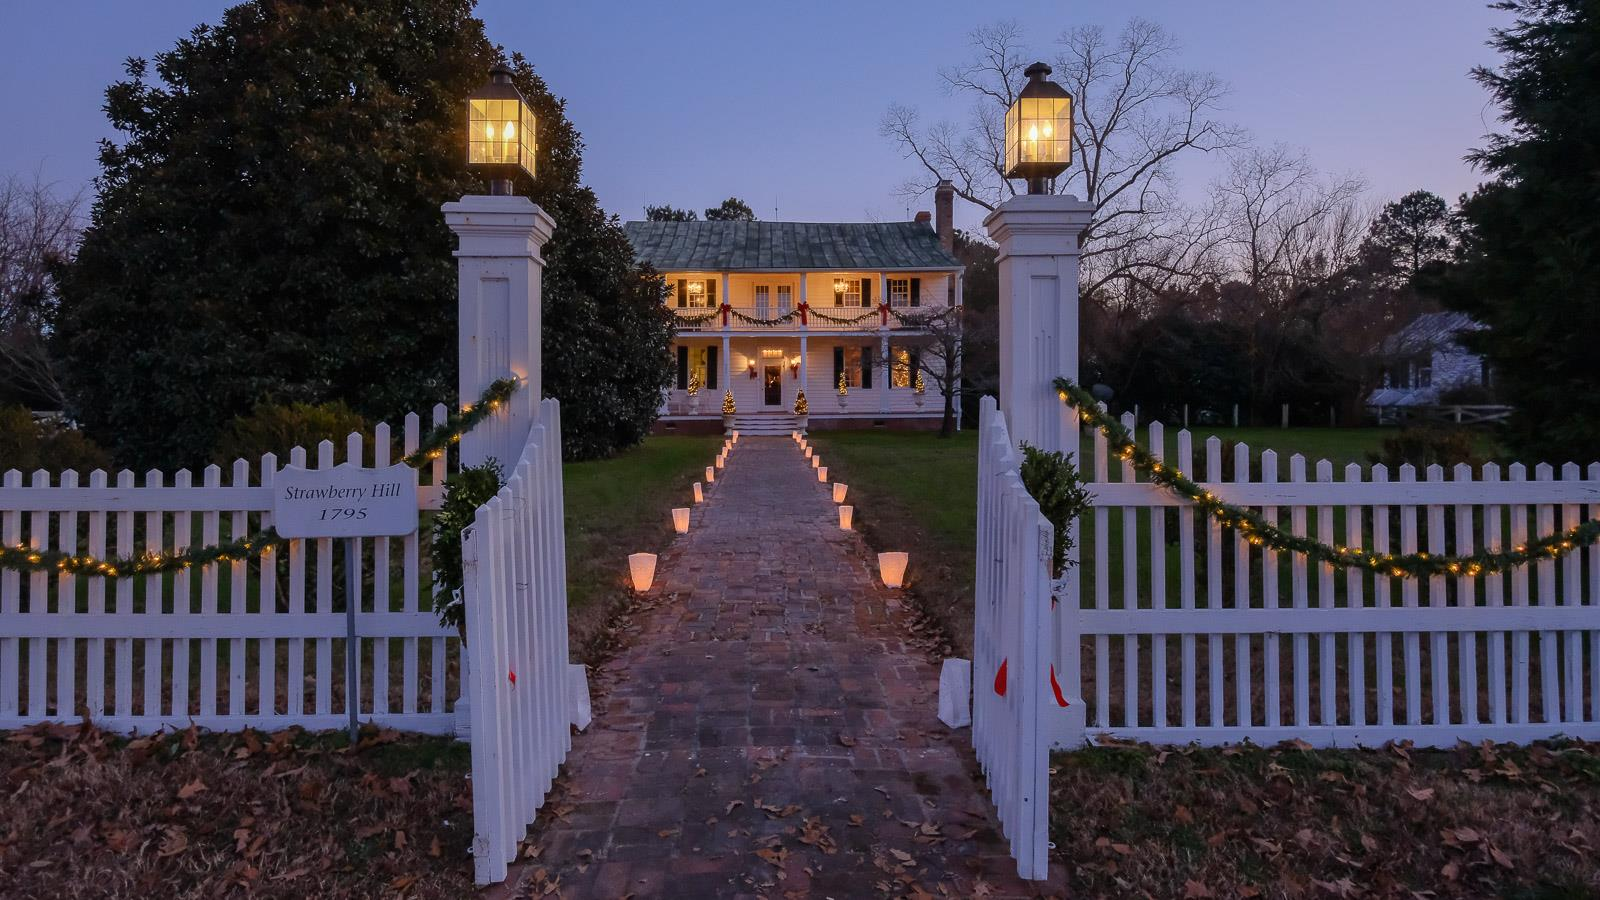 Candlelight Tour, Edenton, North Carolina